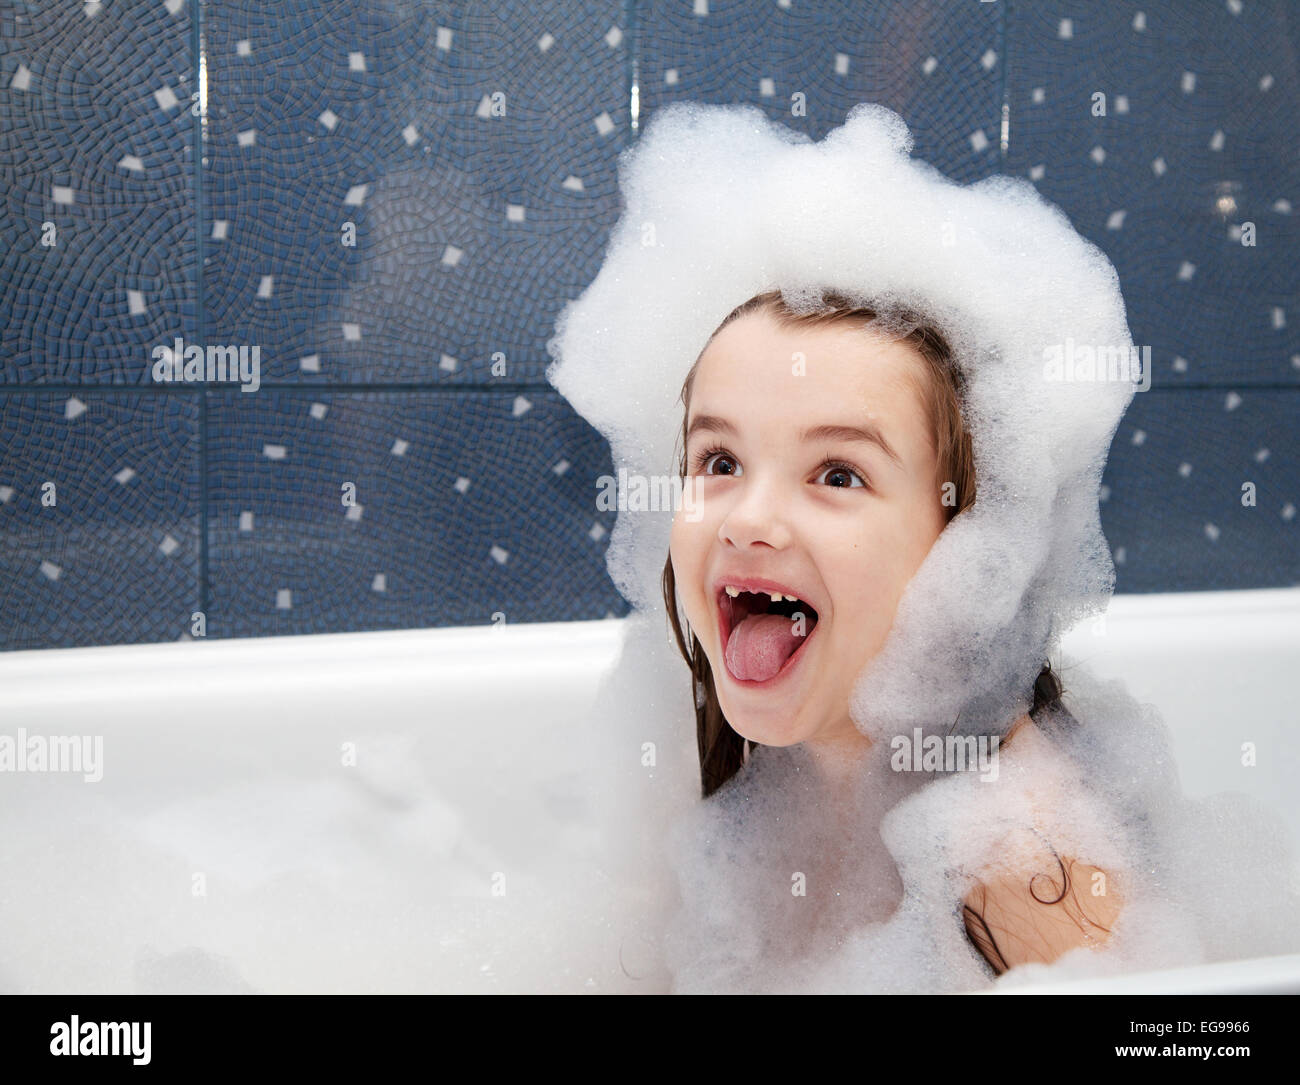 surprised little girl sitting in a bath with soap suds - Stock Image